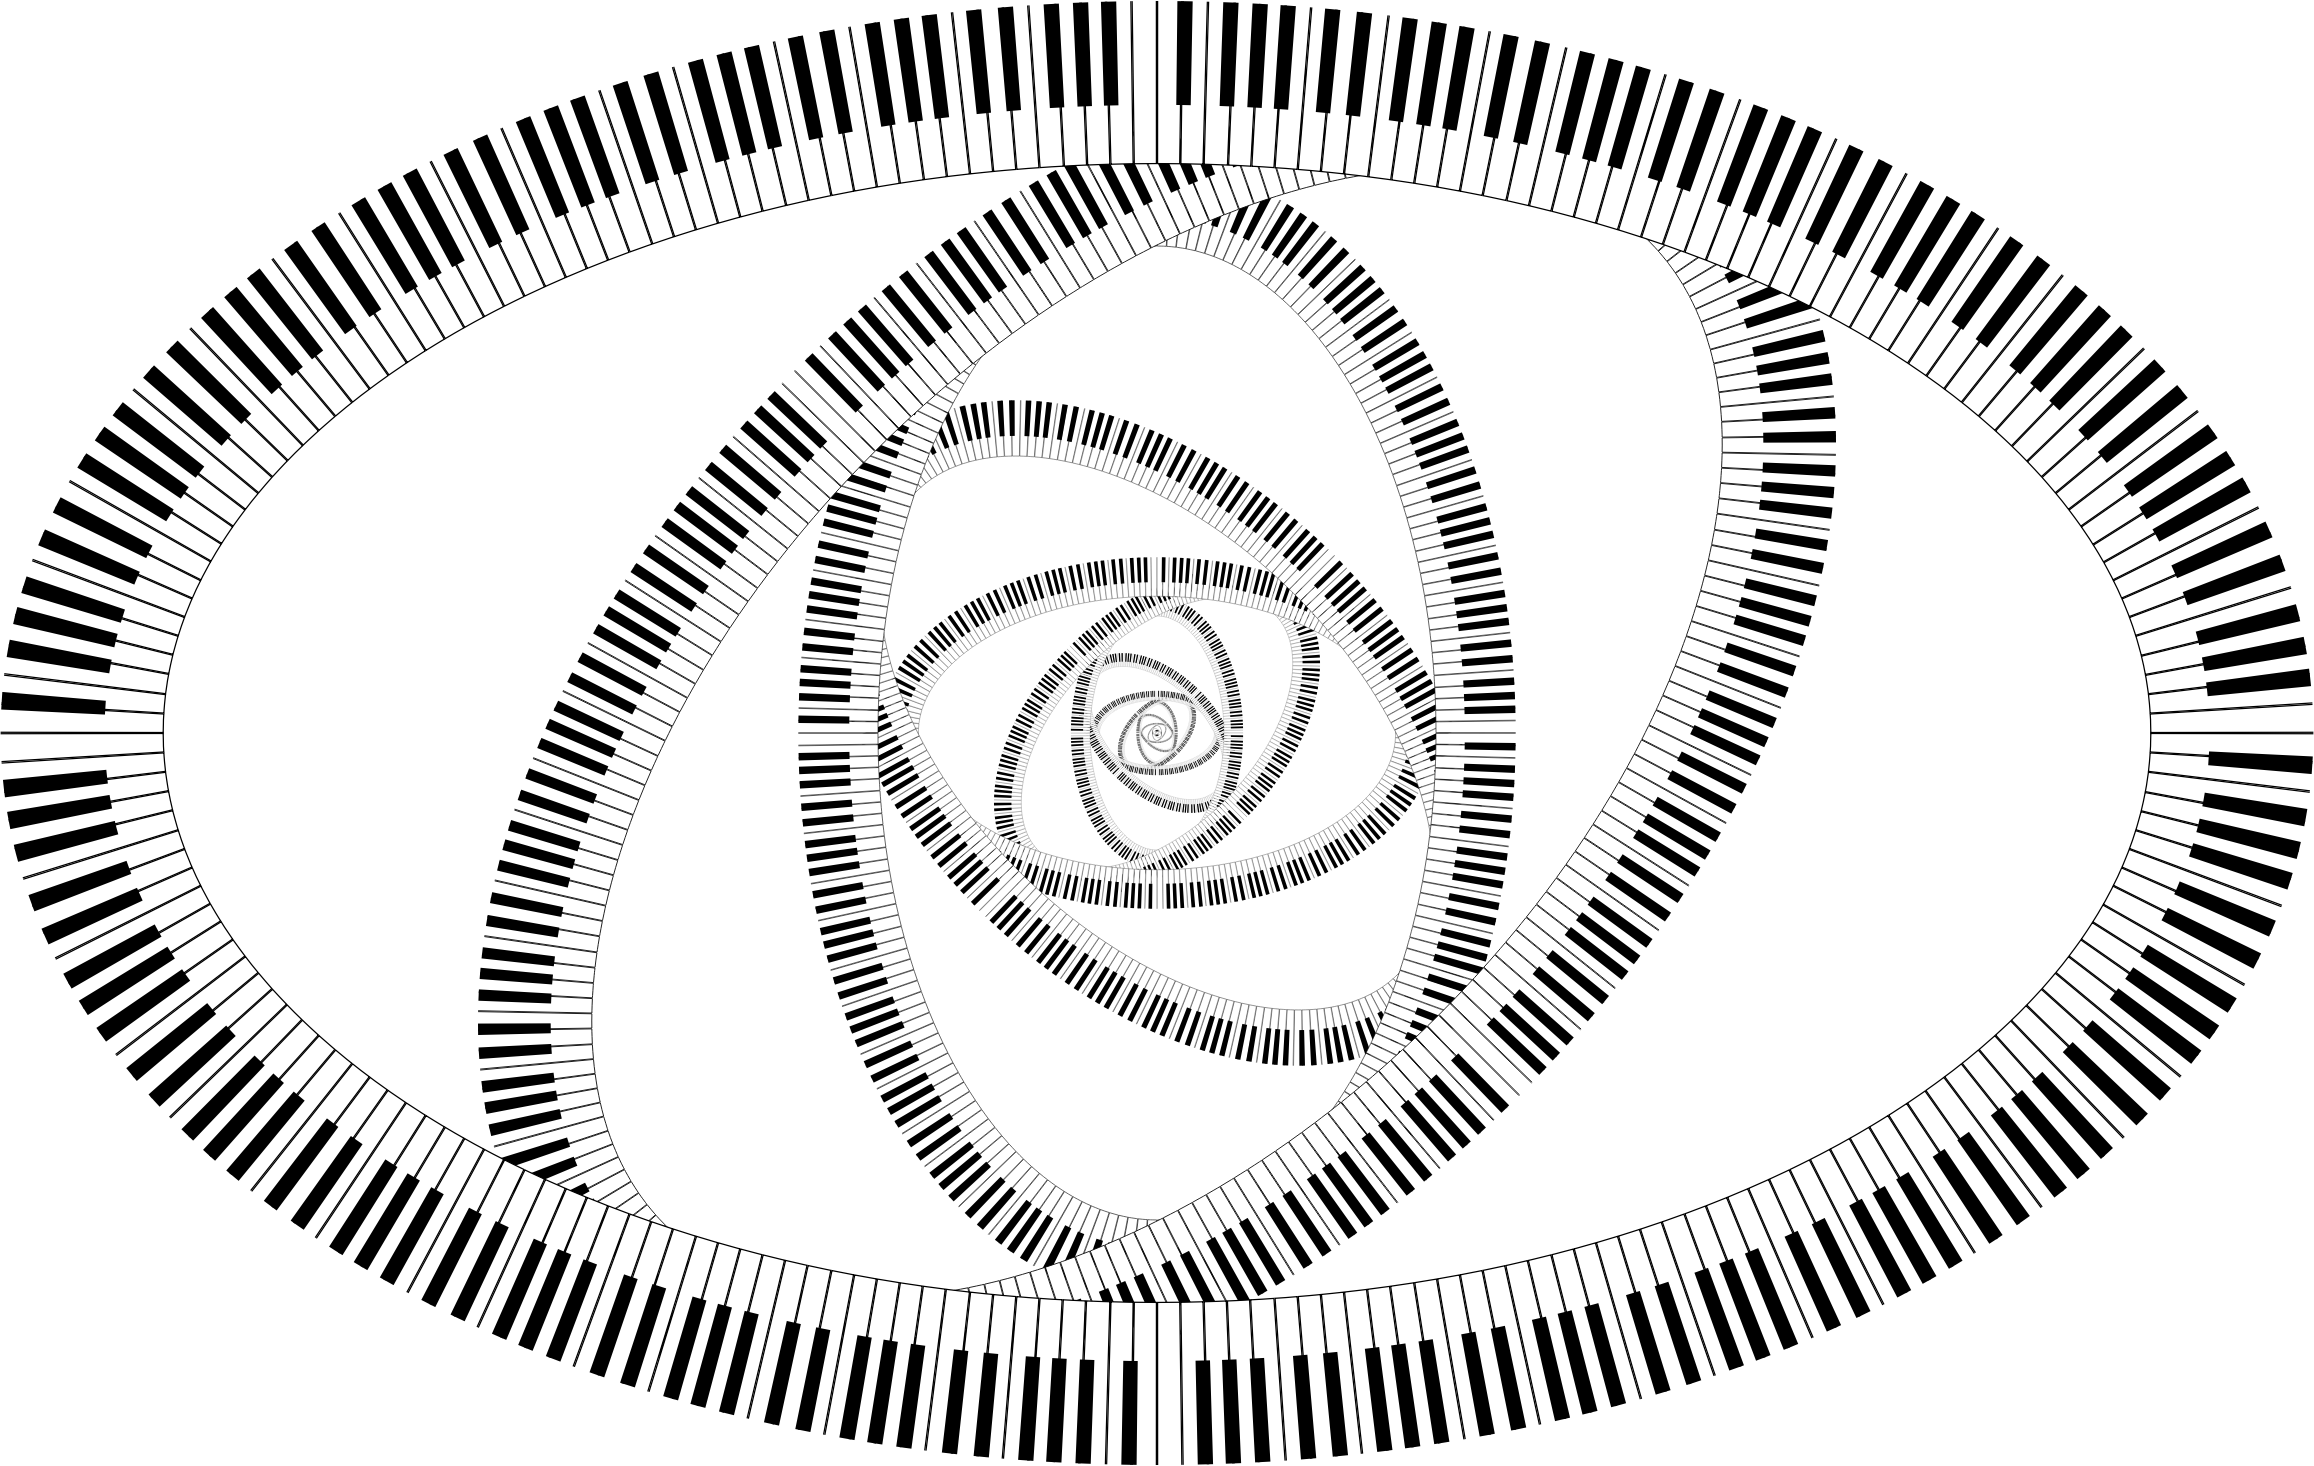 Clipart Piano Keys Ellipse Vortex